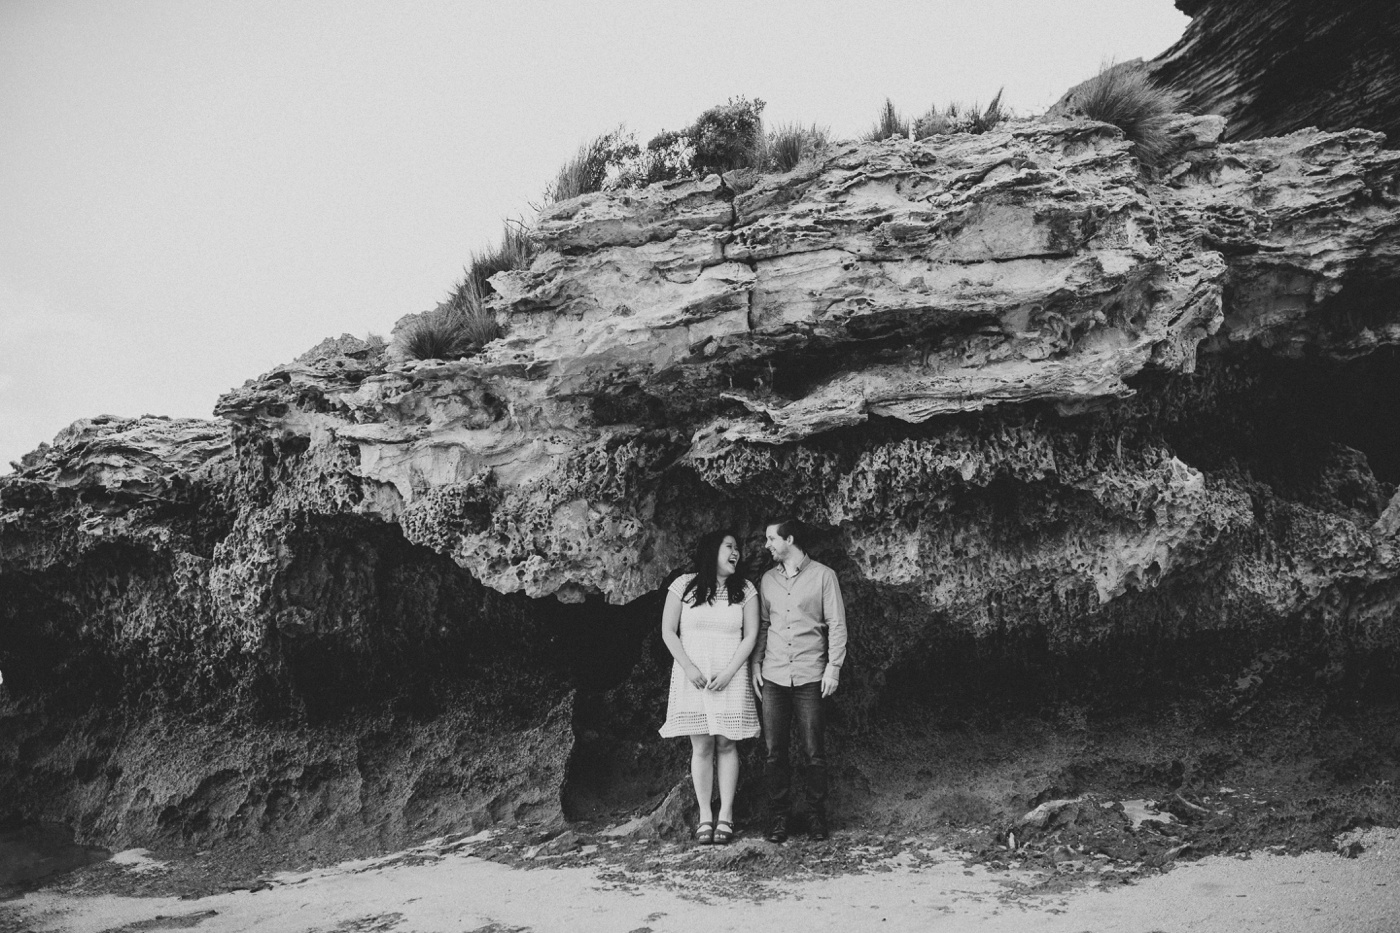 alliedave_mornington-peninsula-back-beach-relaxed-engagement-session_melbourne-candid-wedding-photographer_8